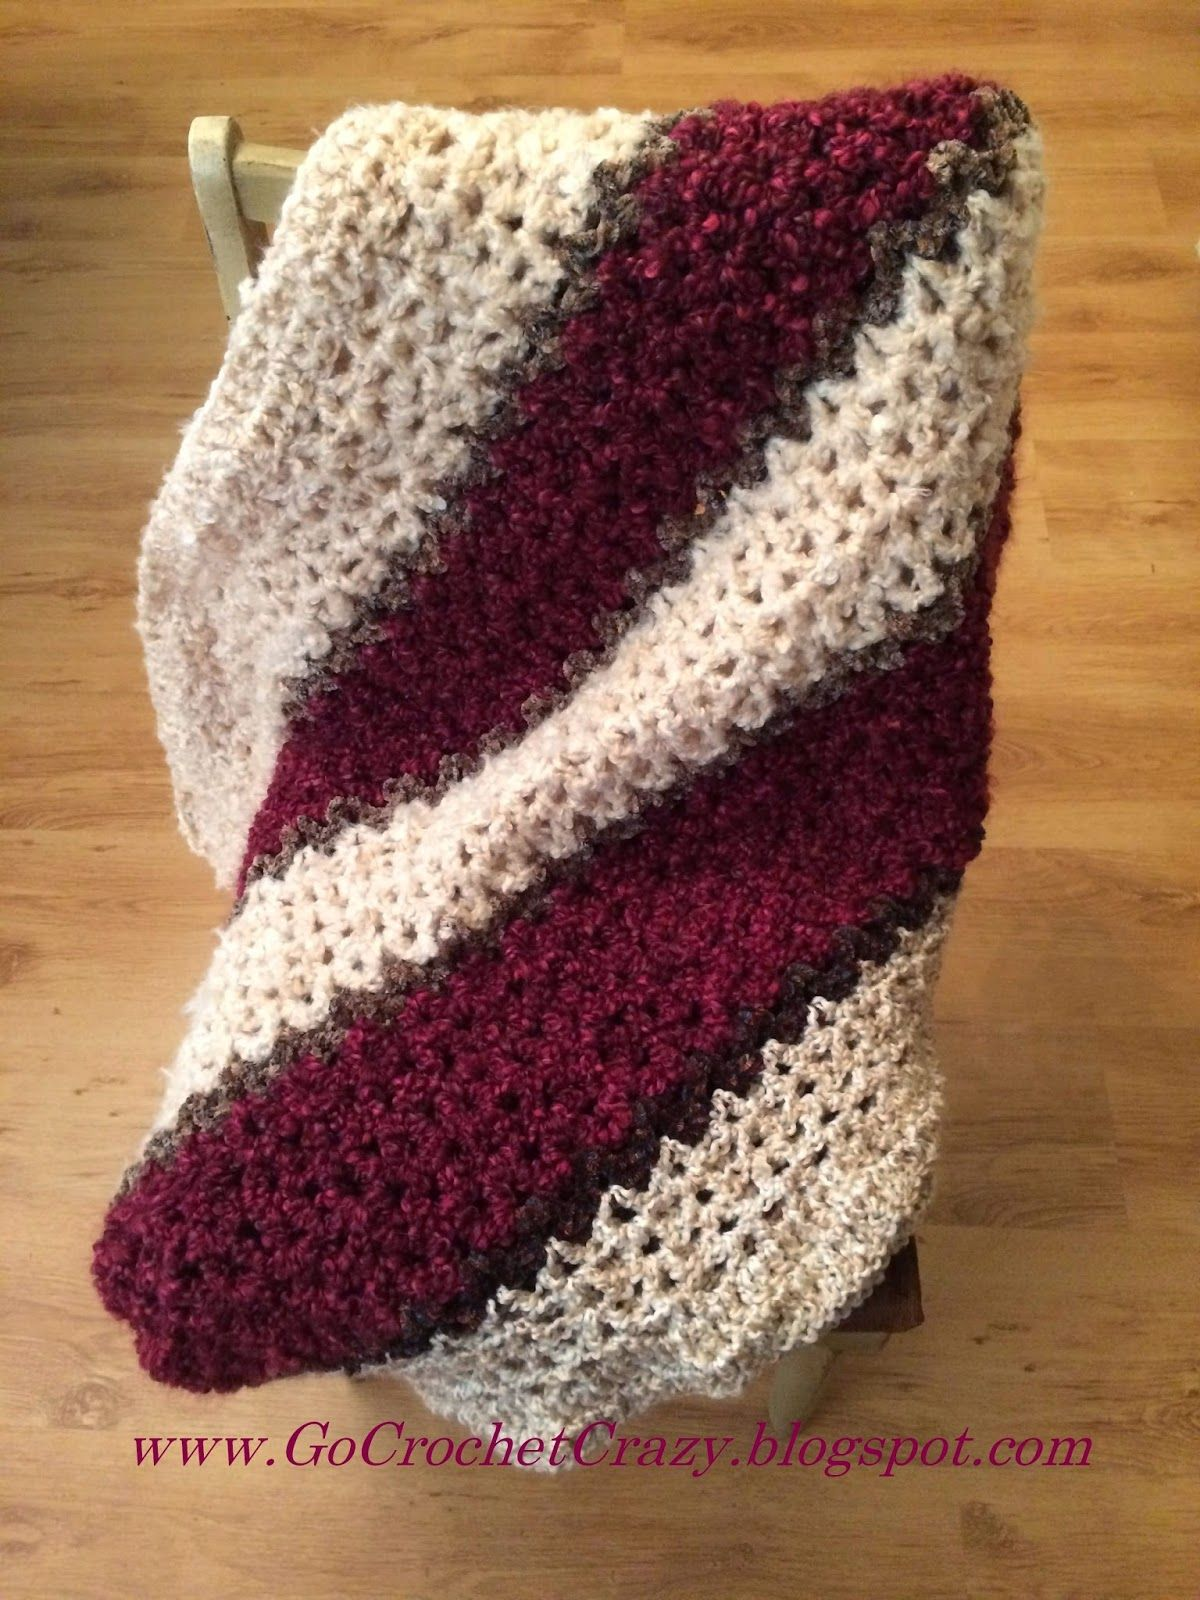 A mostly V-Stitch lapghan works up quickly to make this chunky, soft ...